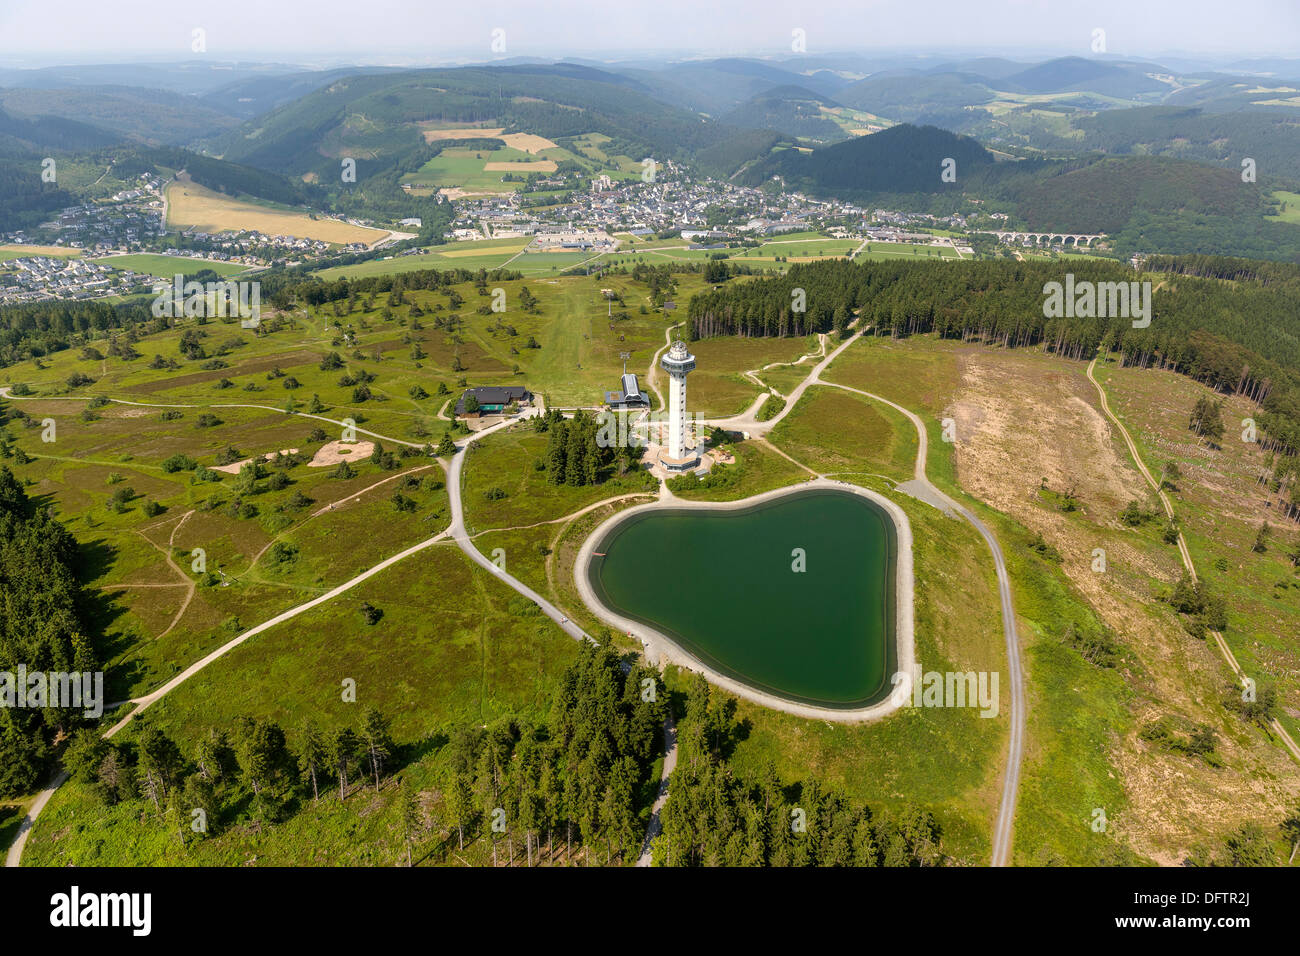 Aerial view, reservoir and Hochheide Tower on Mt Ettelsberg, Effelsberg, Willingen - Upland, Hesse, Germany - Stock Image